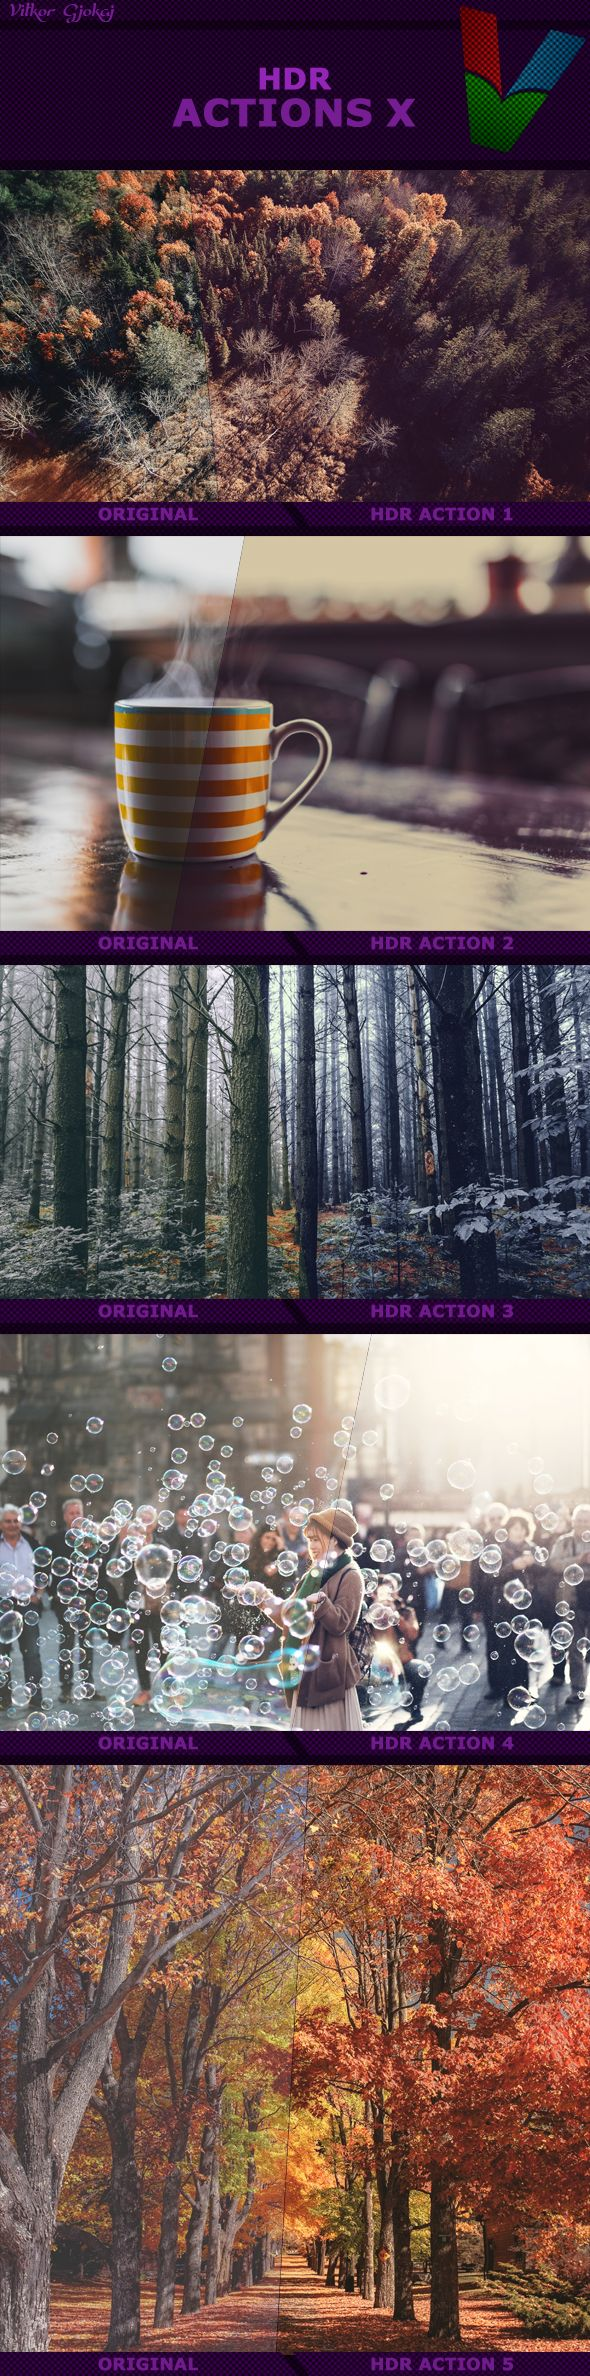 17 best images about photoshop actions on pinterest